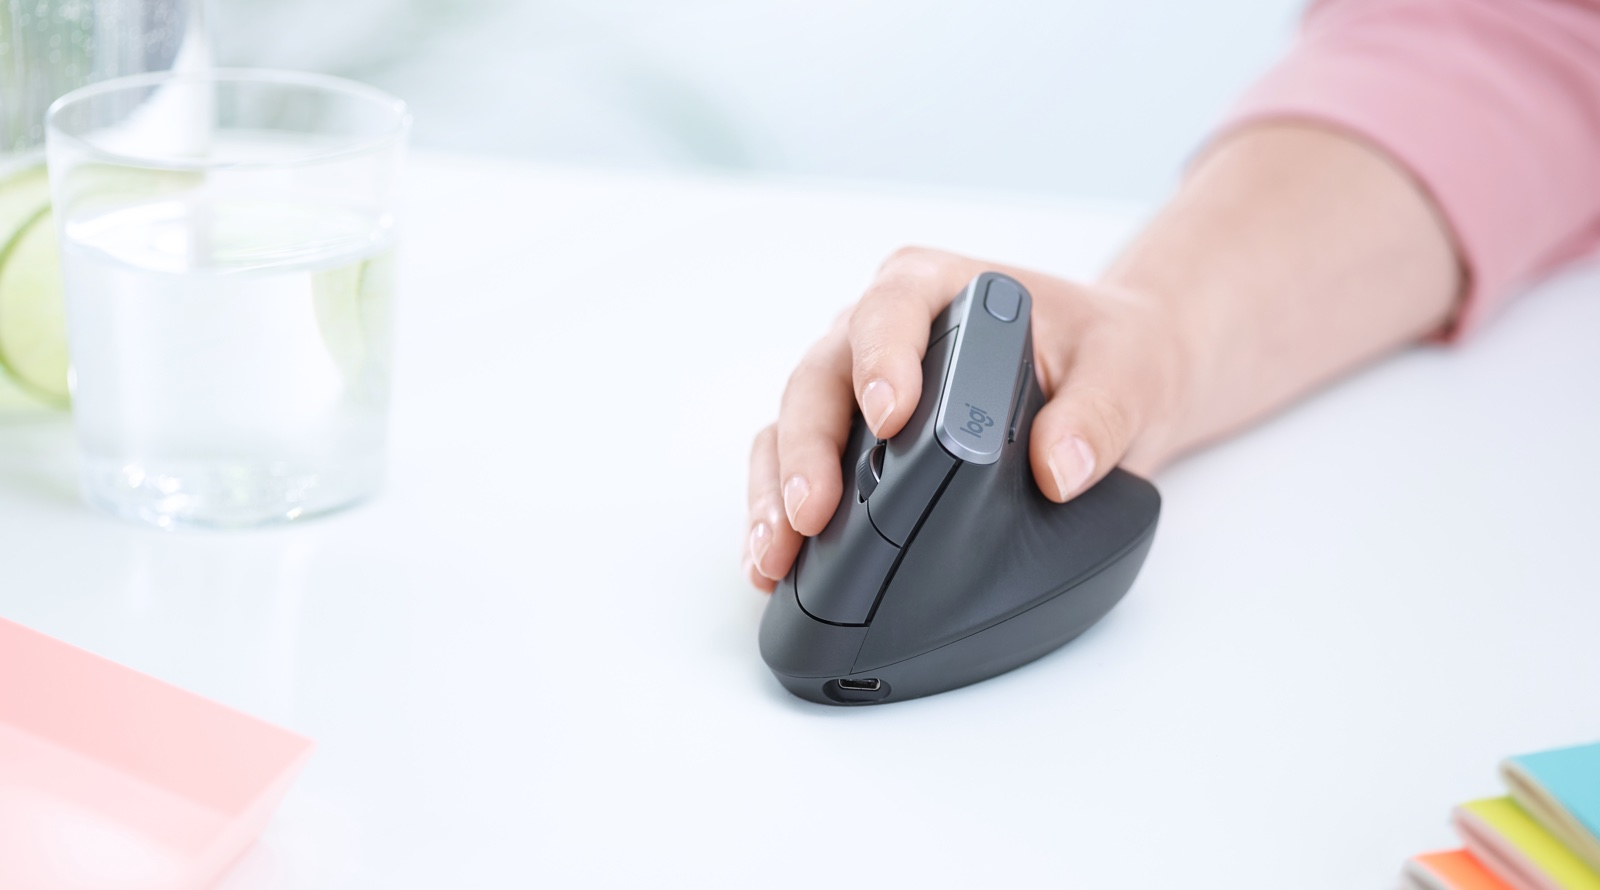 Logitech Unveils MX VERTICAL Mouse Designed to Reduce Forearm Strain